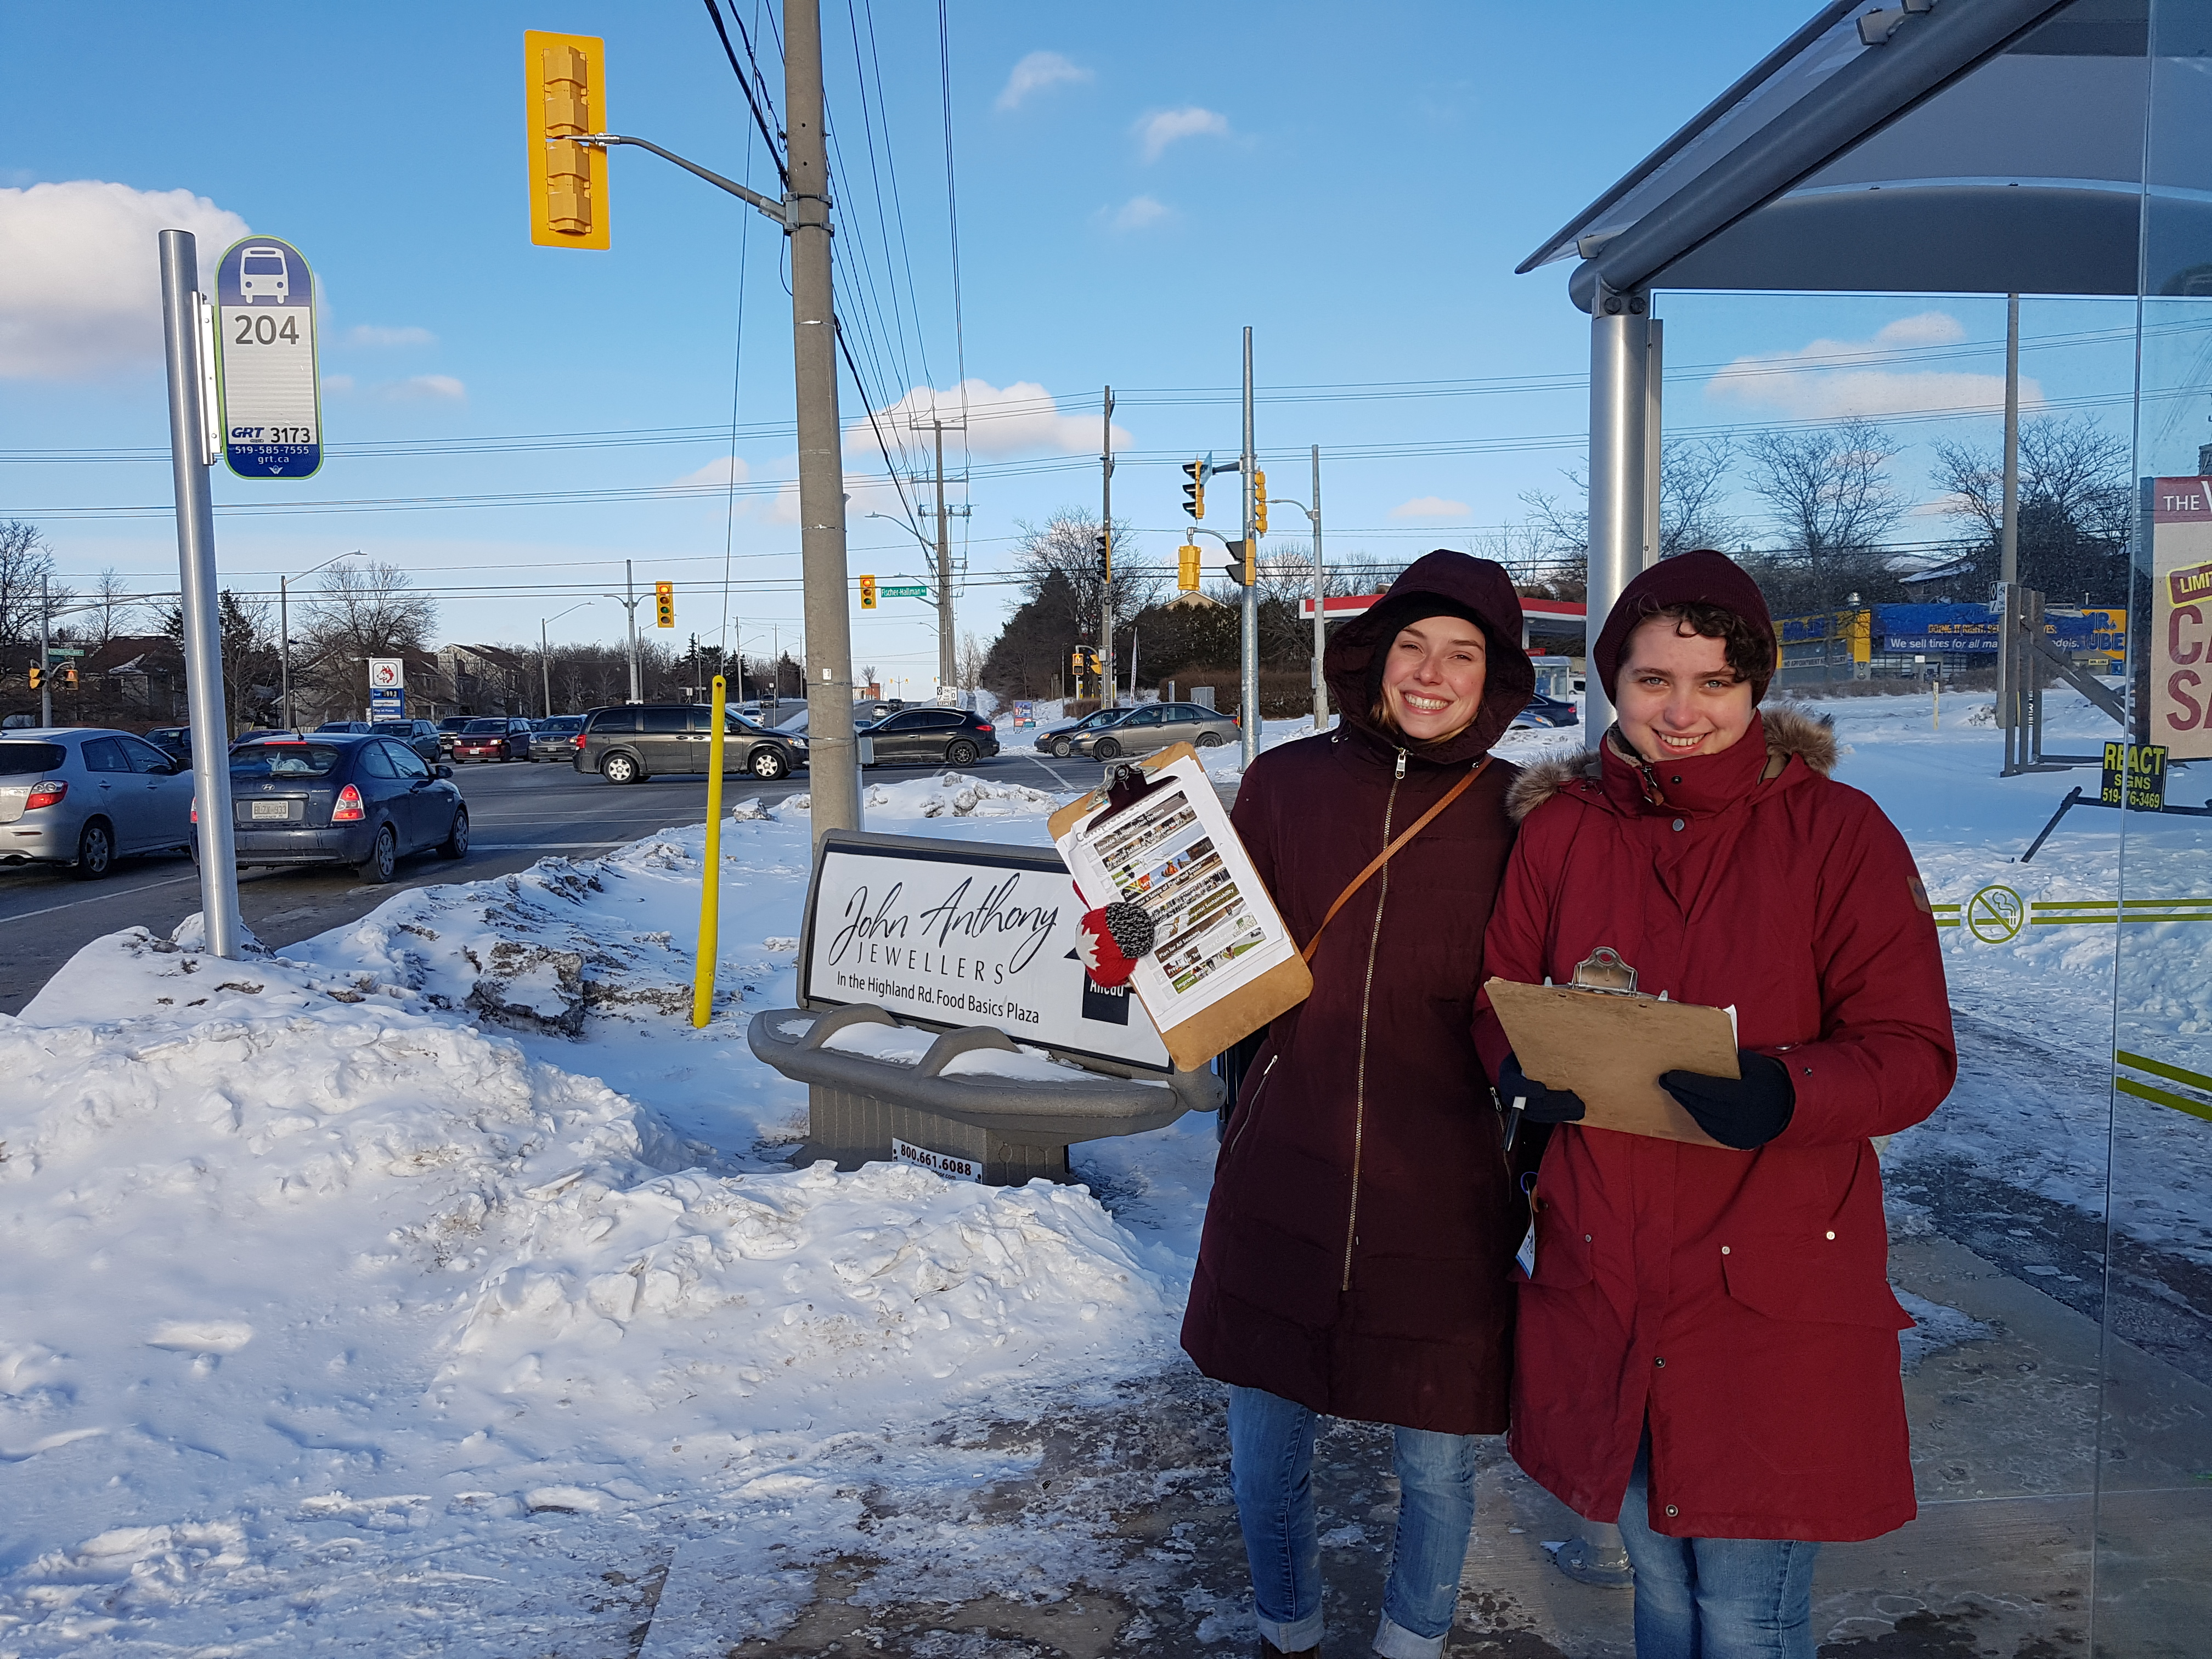 Complete streets in person survey at grt bus stop